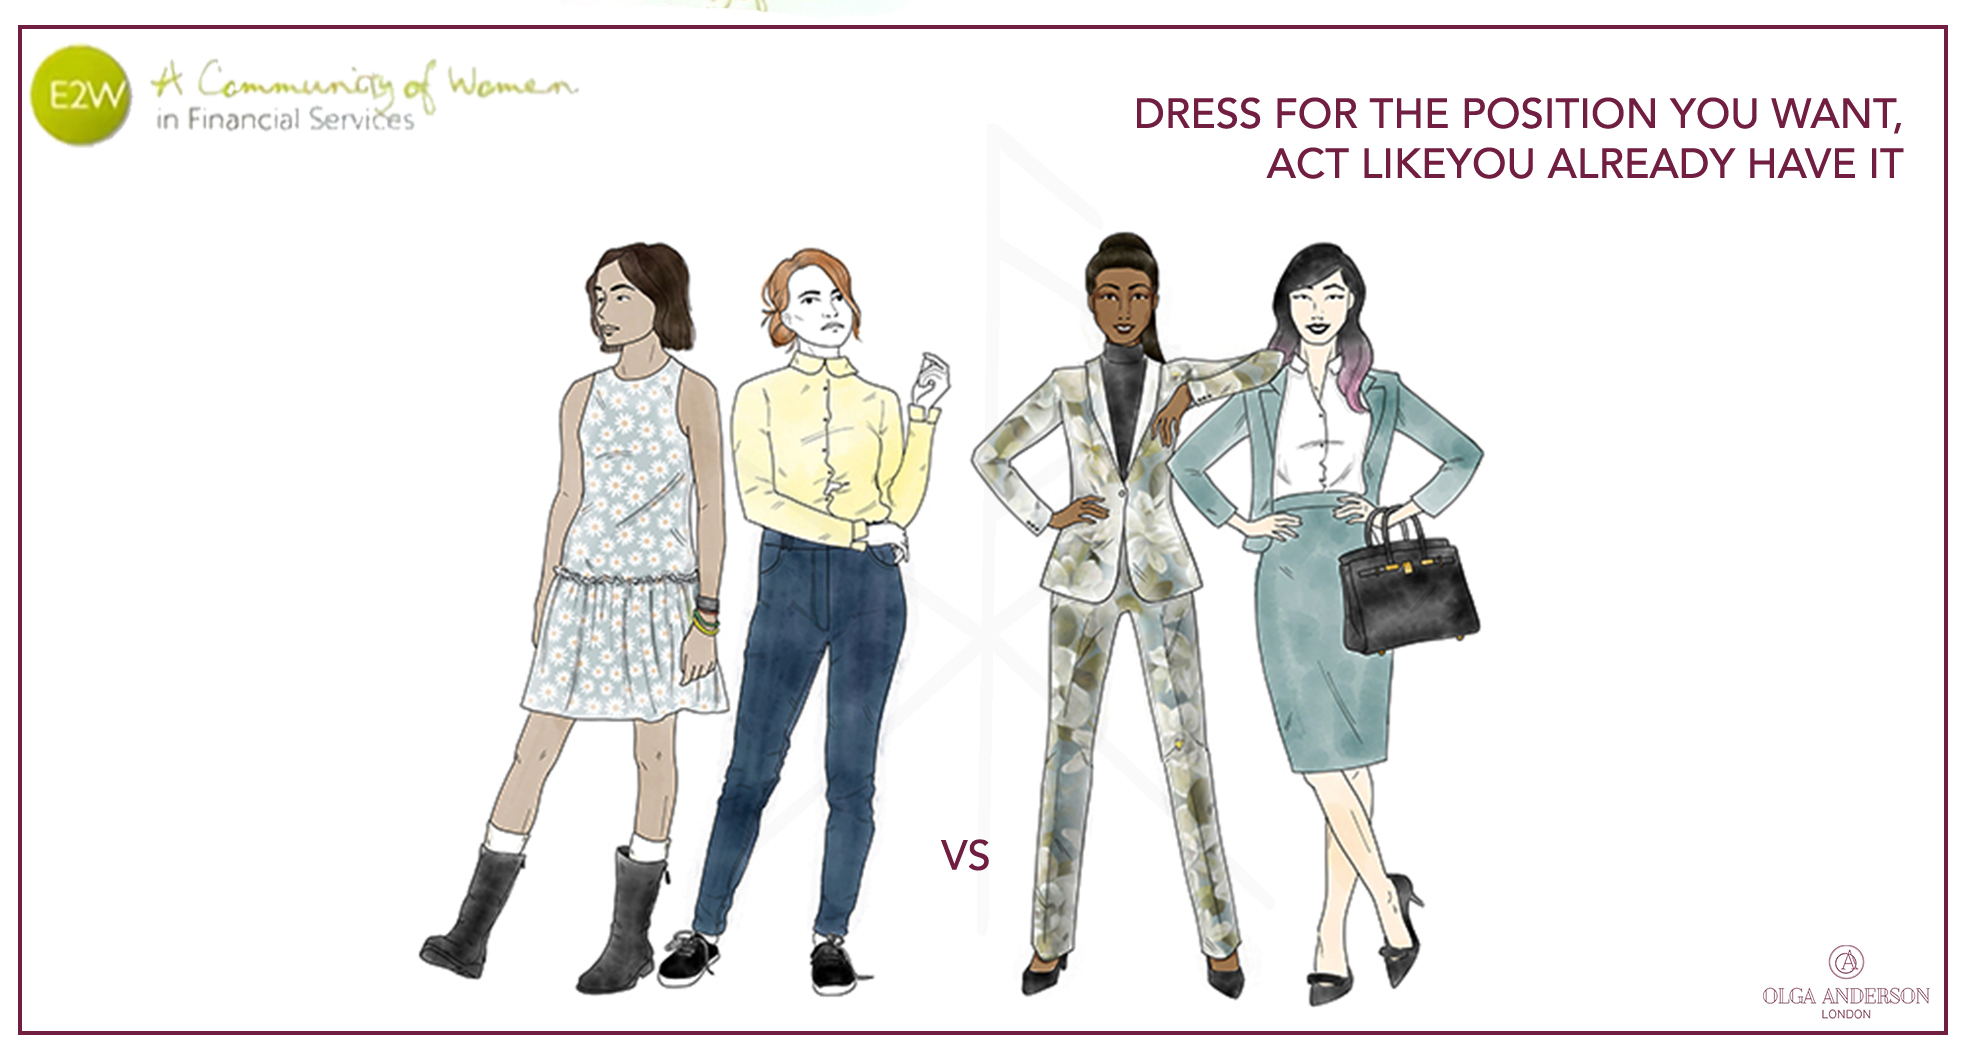 Olga Anderson - Dress for the Position You Want, Act Like You Already Have It